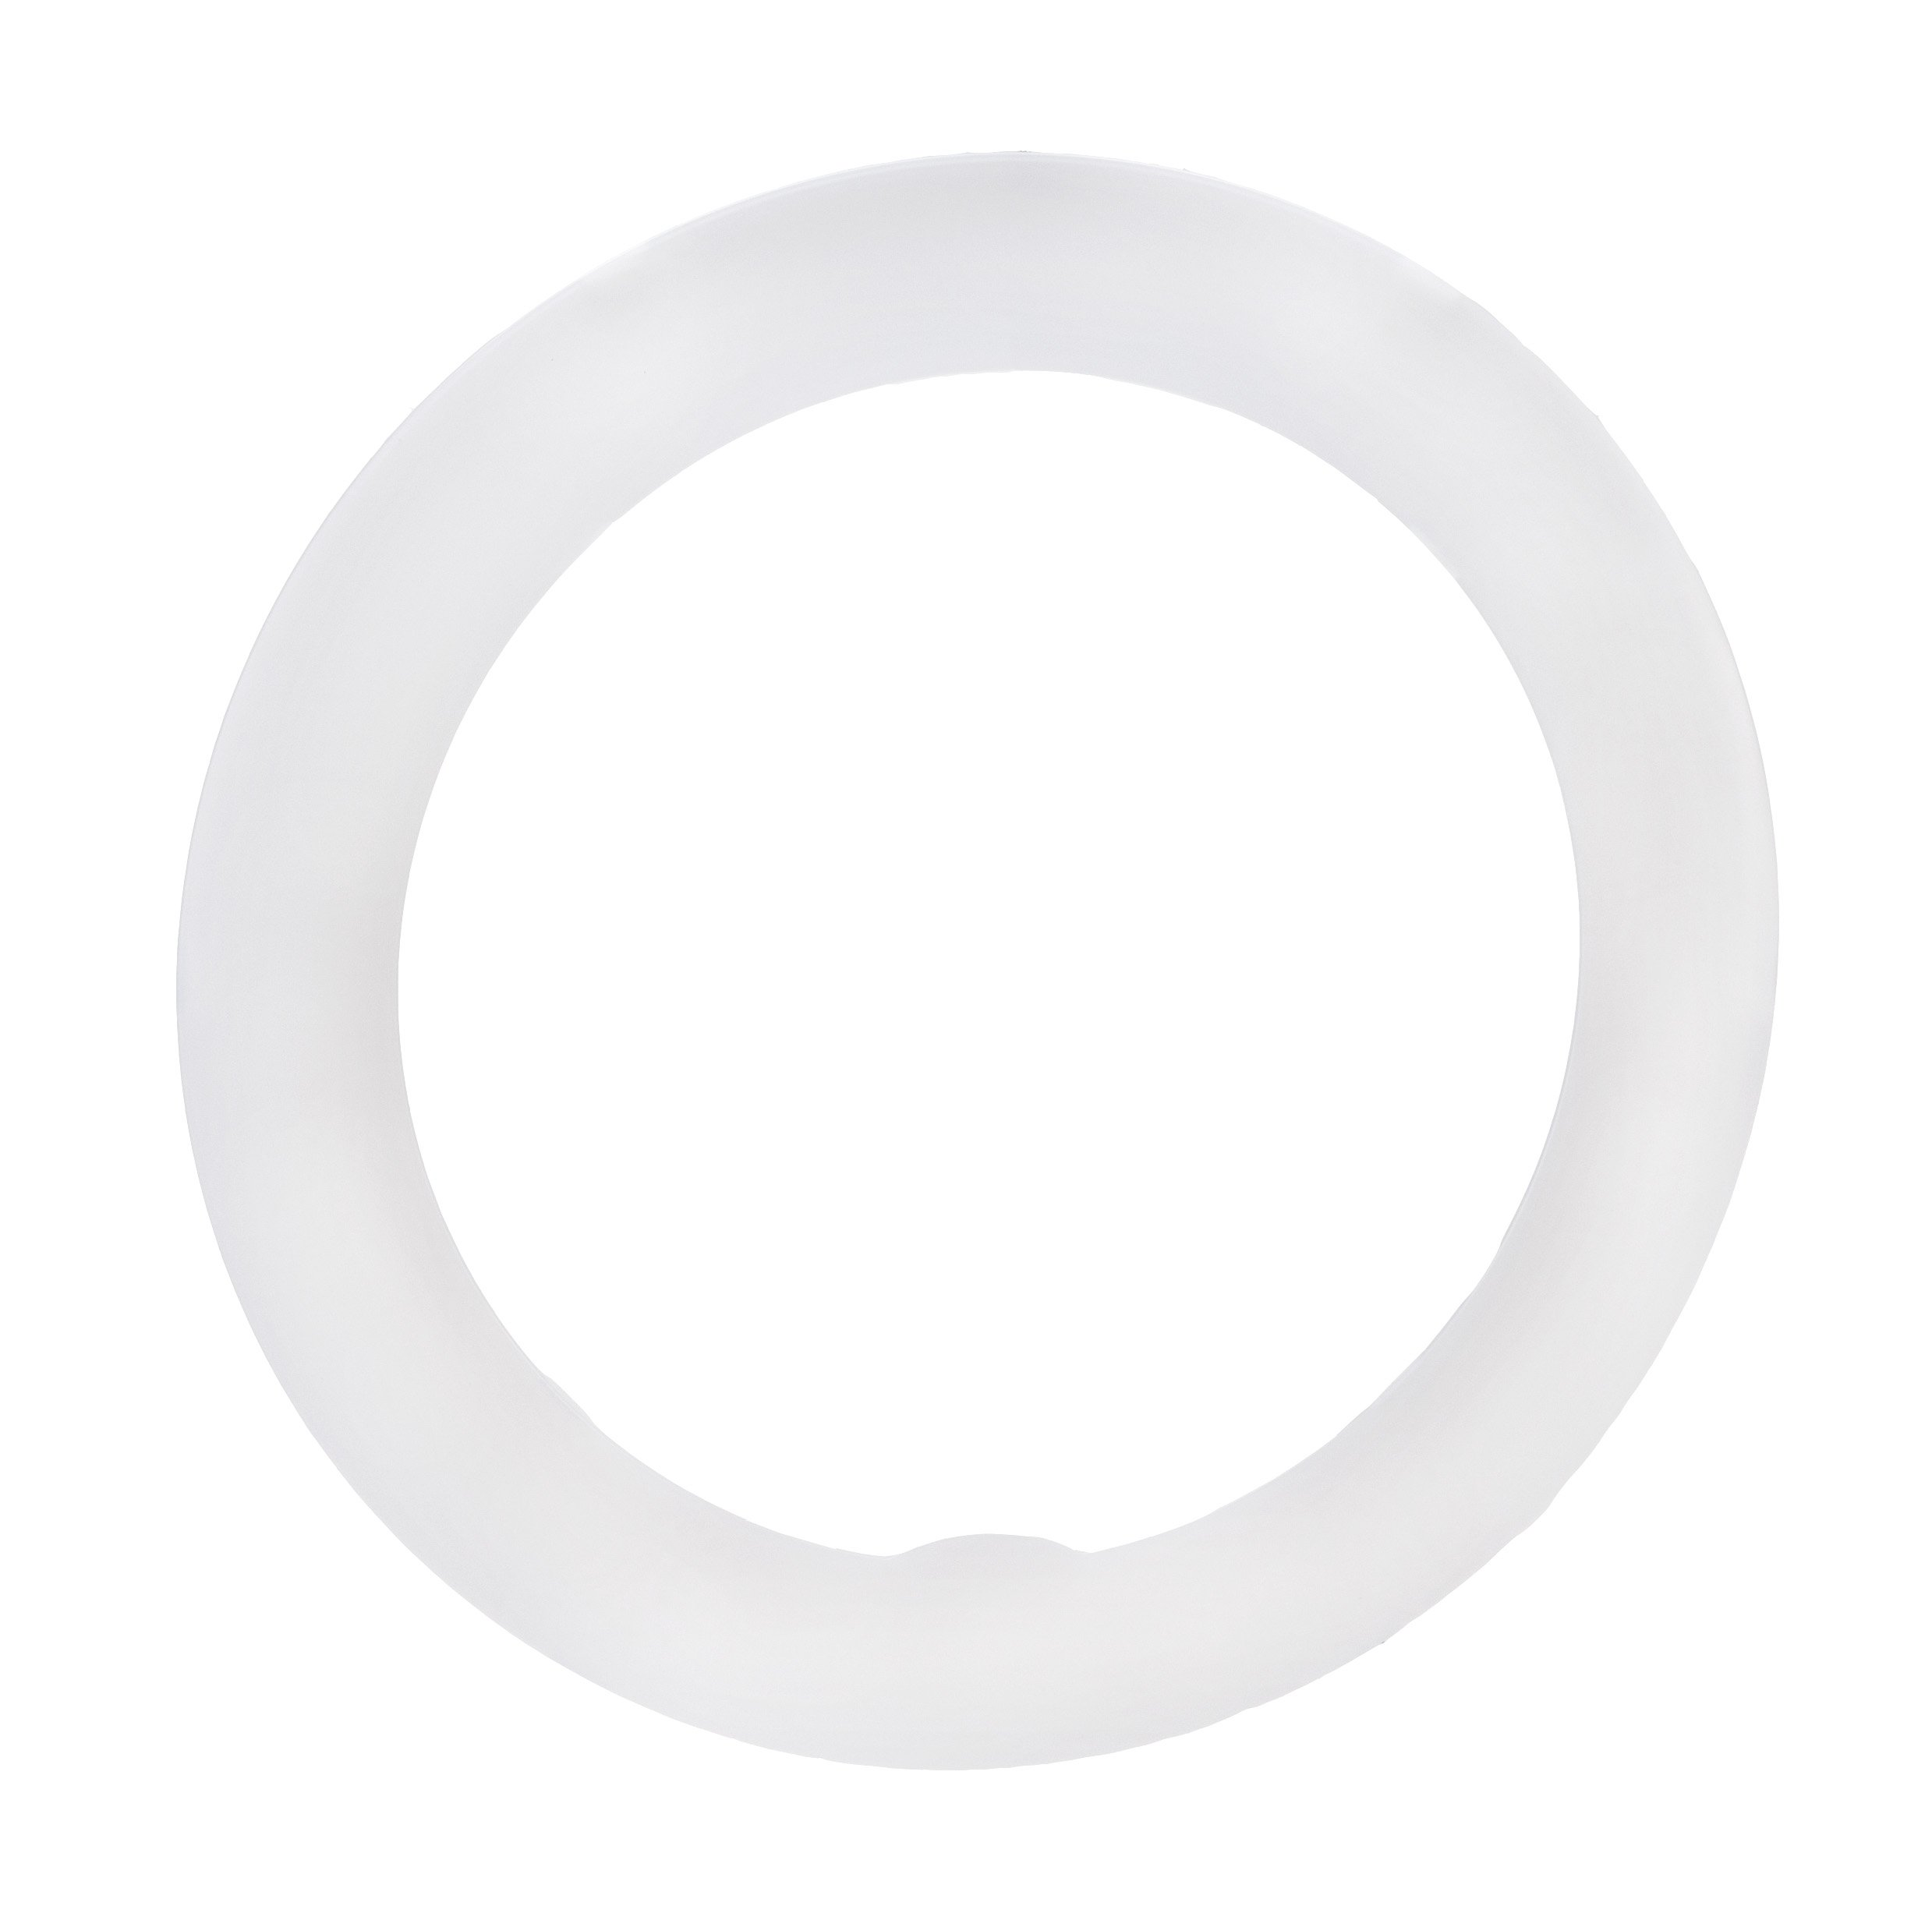 18 inch Ring Light Snap-on White Resin Diffusion - Softens light for 18 inch ring lights